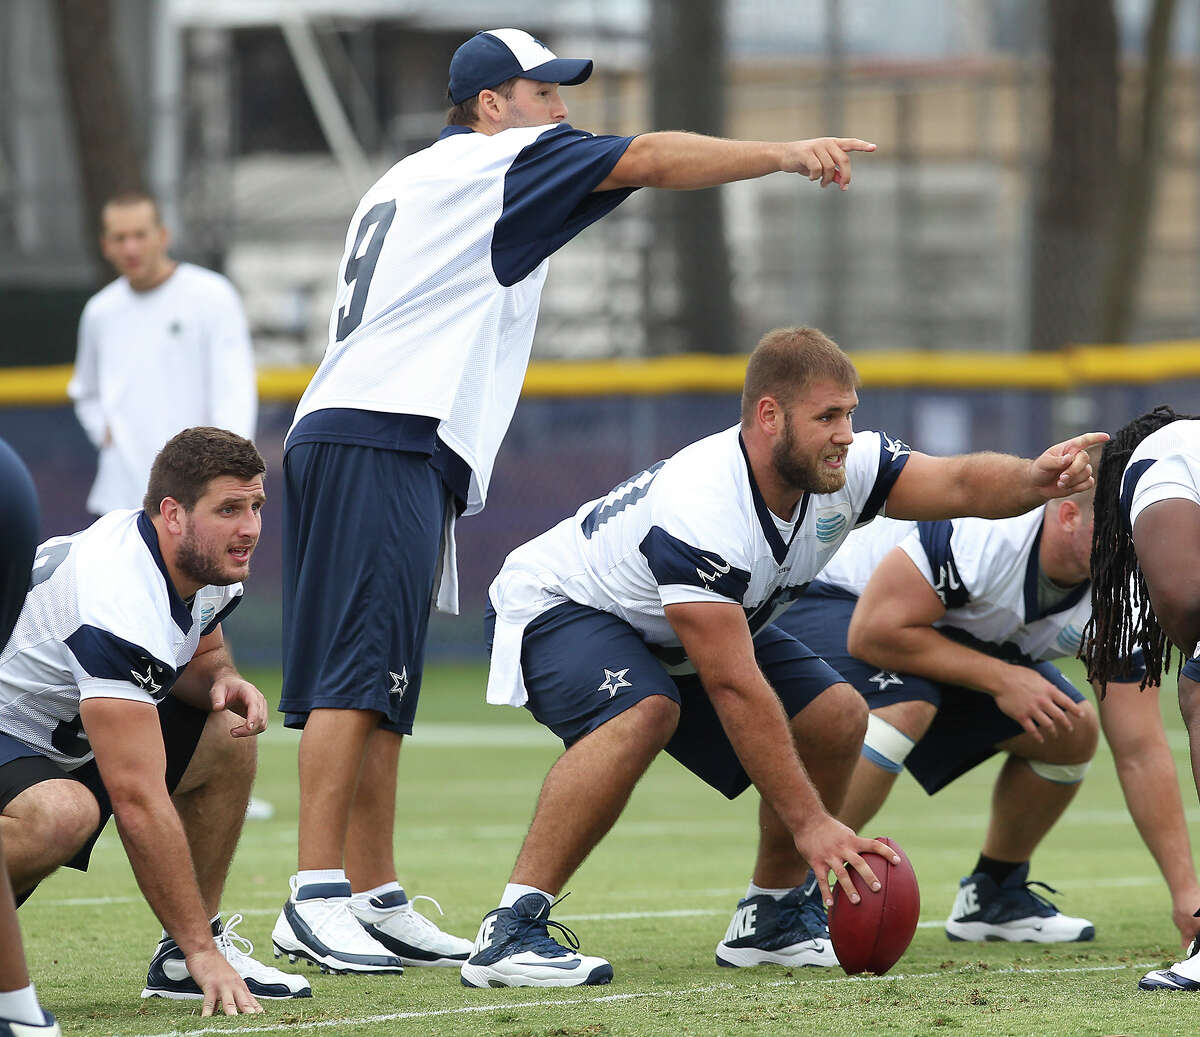 Rookie center Travis Frederick (center) joins quarterback Tony Romo over the ball at the Dallas Cowboys training camp on Sunday, July 21, 2013 in Oxnard.